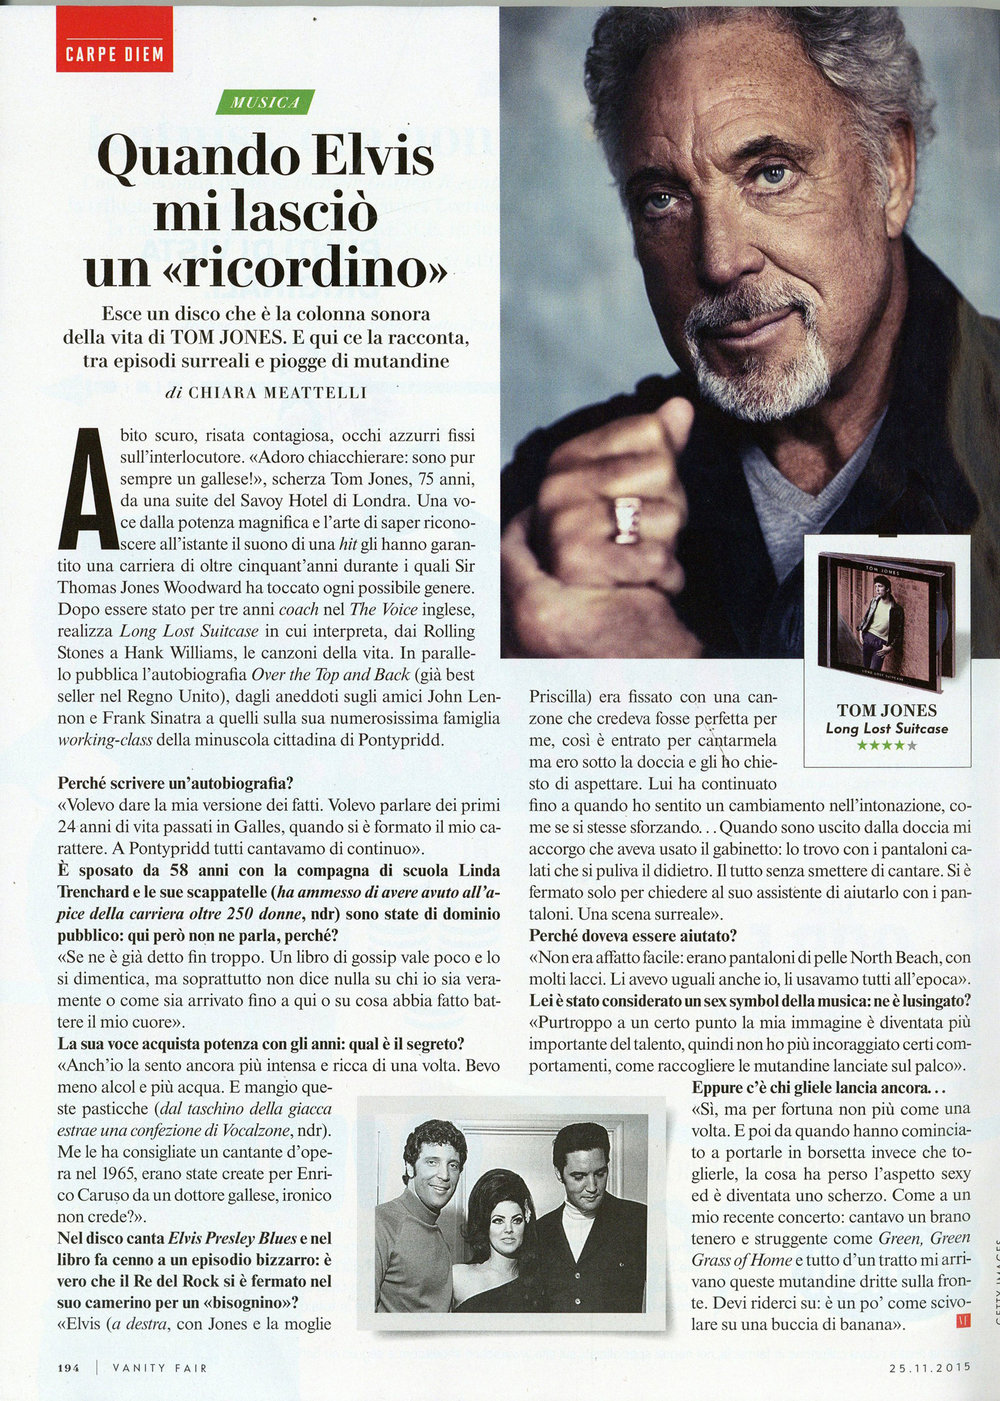 Vanity Fair: Tom Jones interview